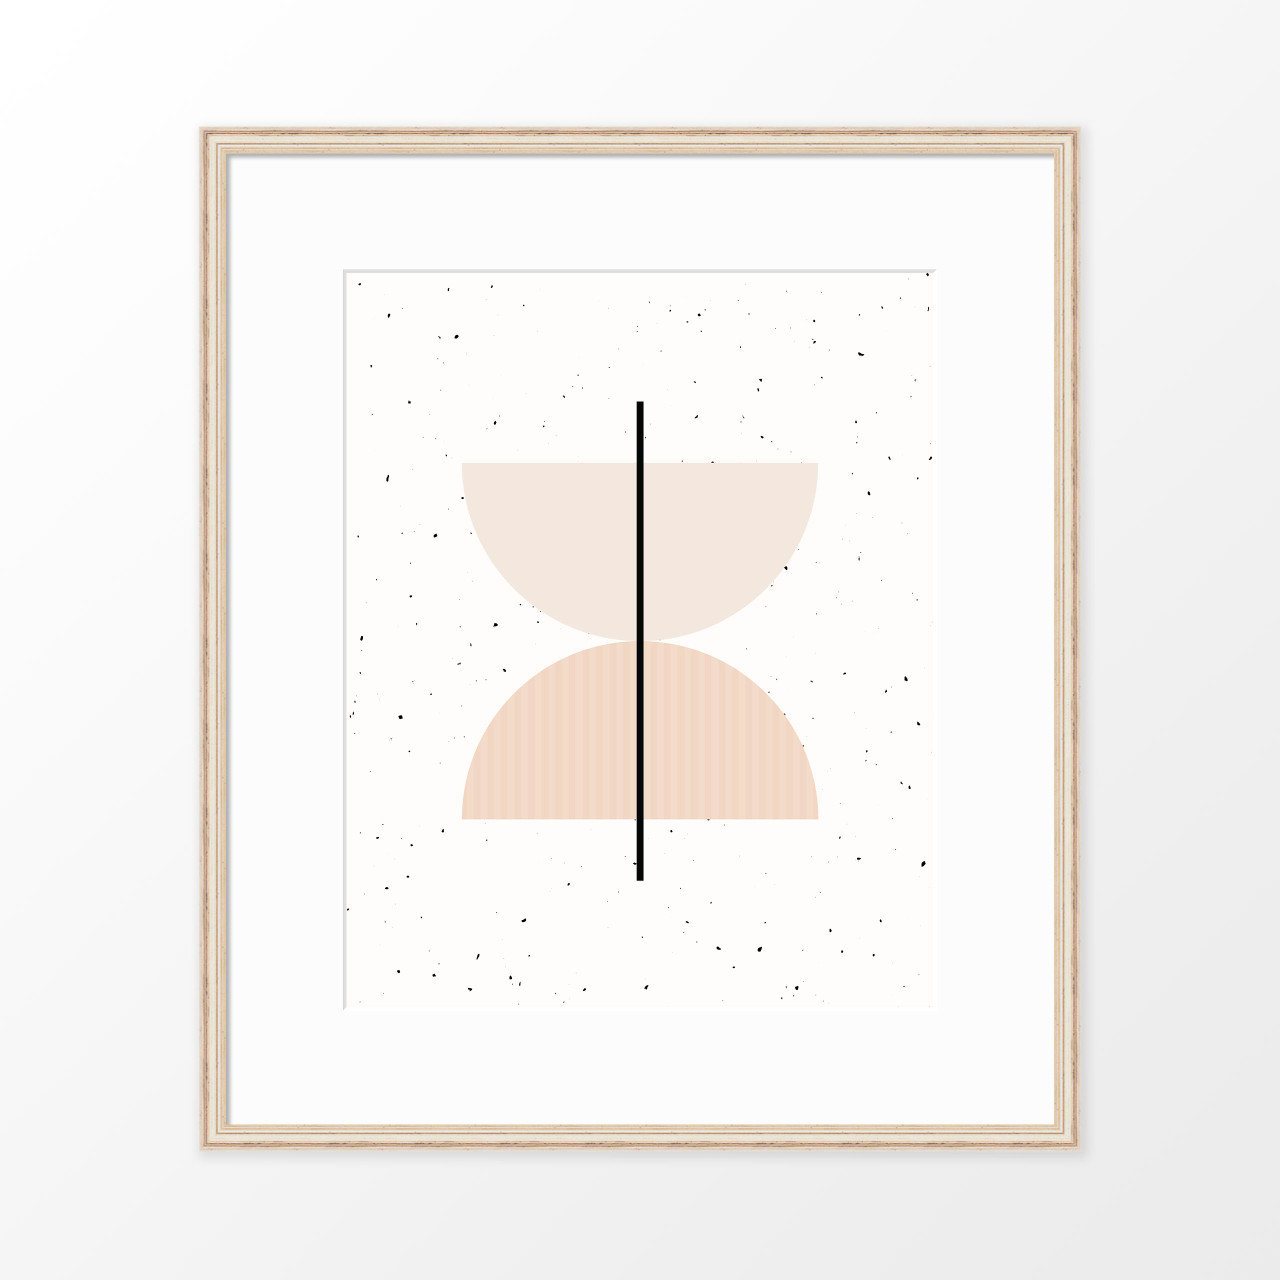 'Half Circles II' Minimalist Geometric Art Print from The Printed Home (Printable)